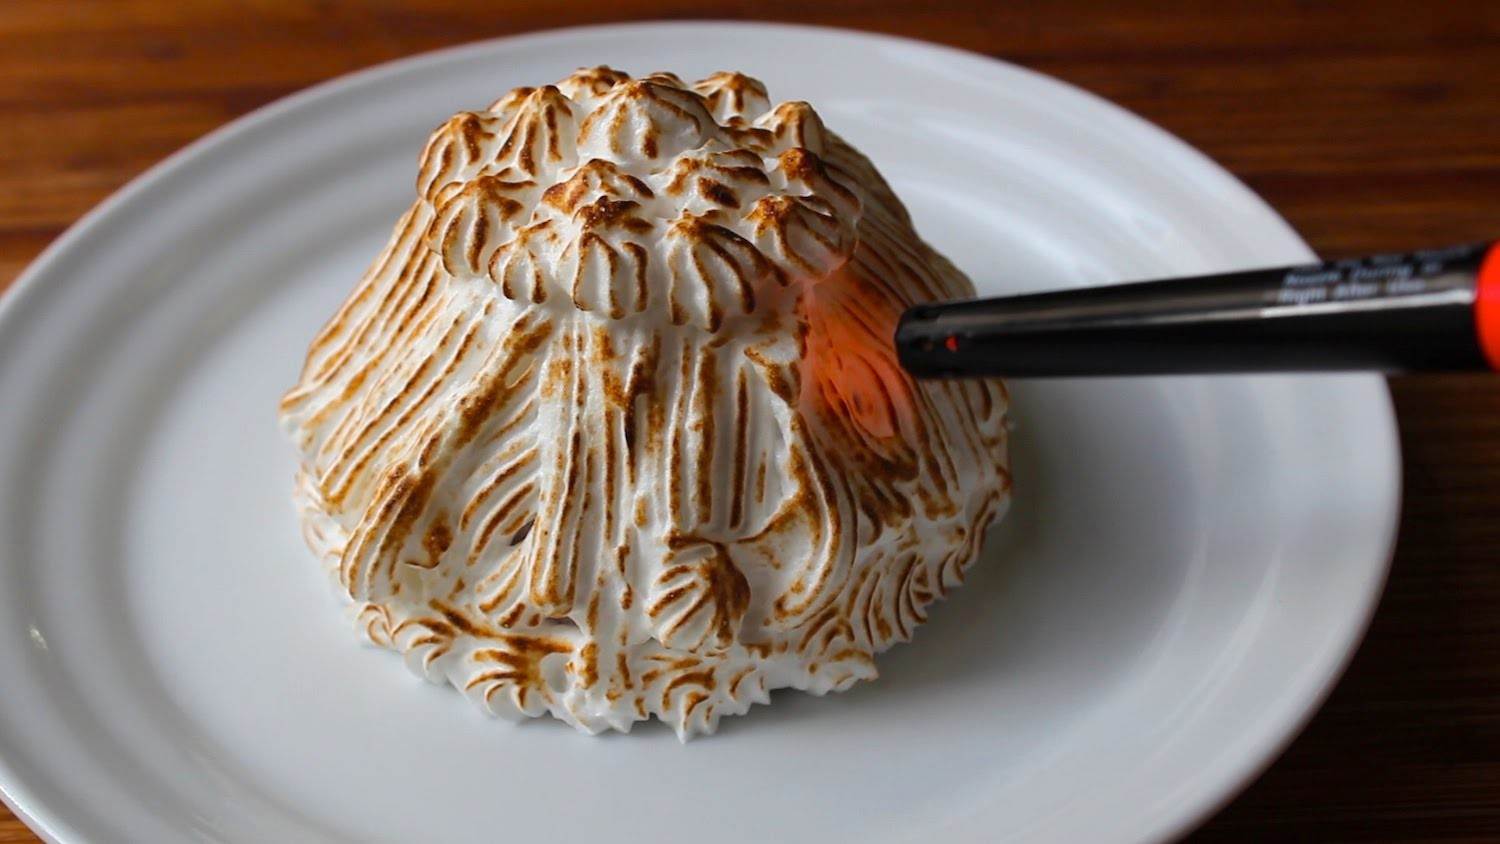 Baked Alaska with a Lighter! How to Make Baked Alaska Ice Cream Cake